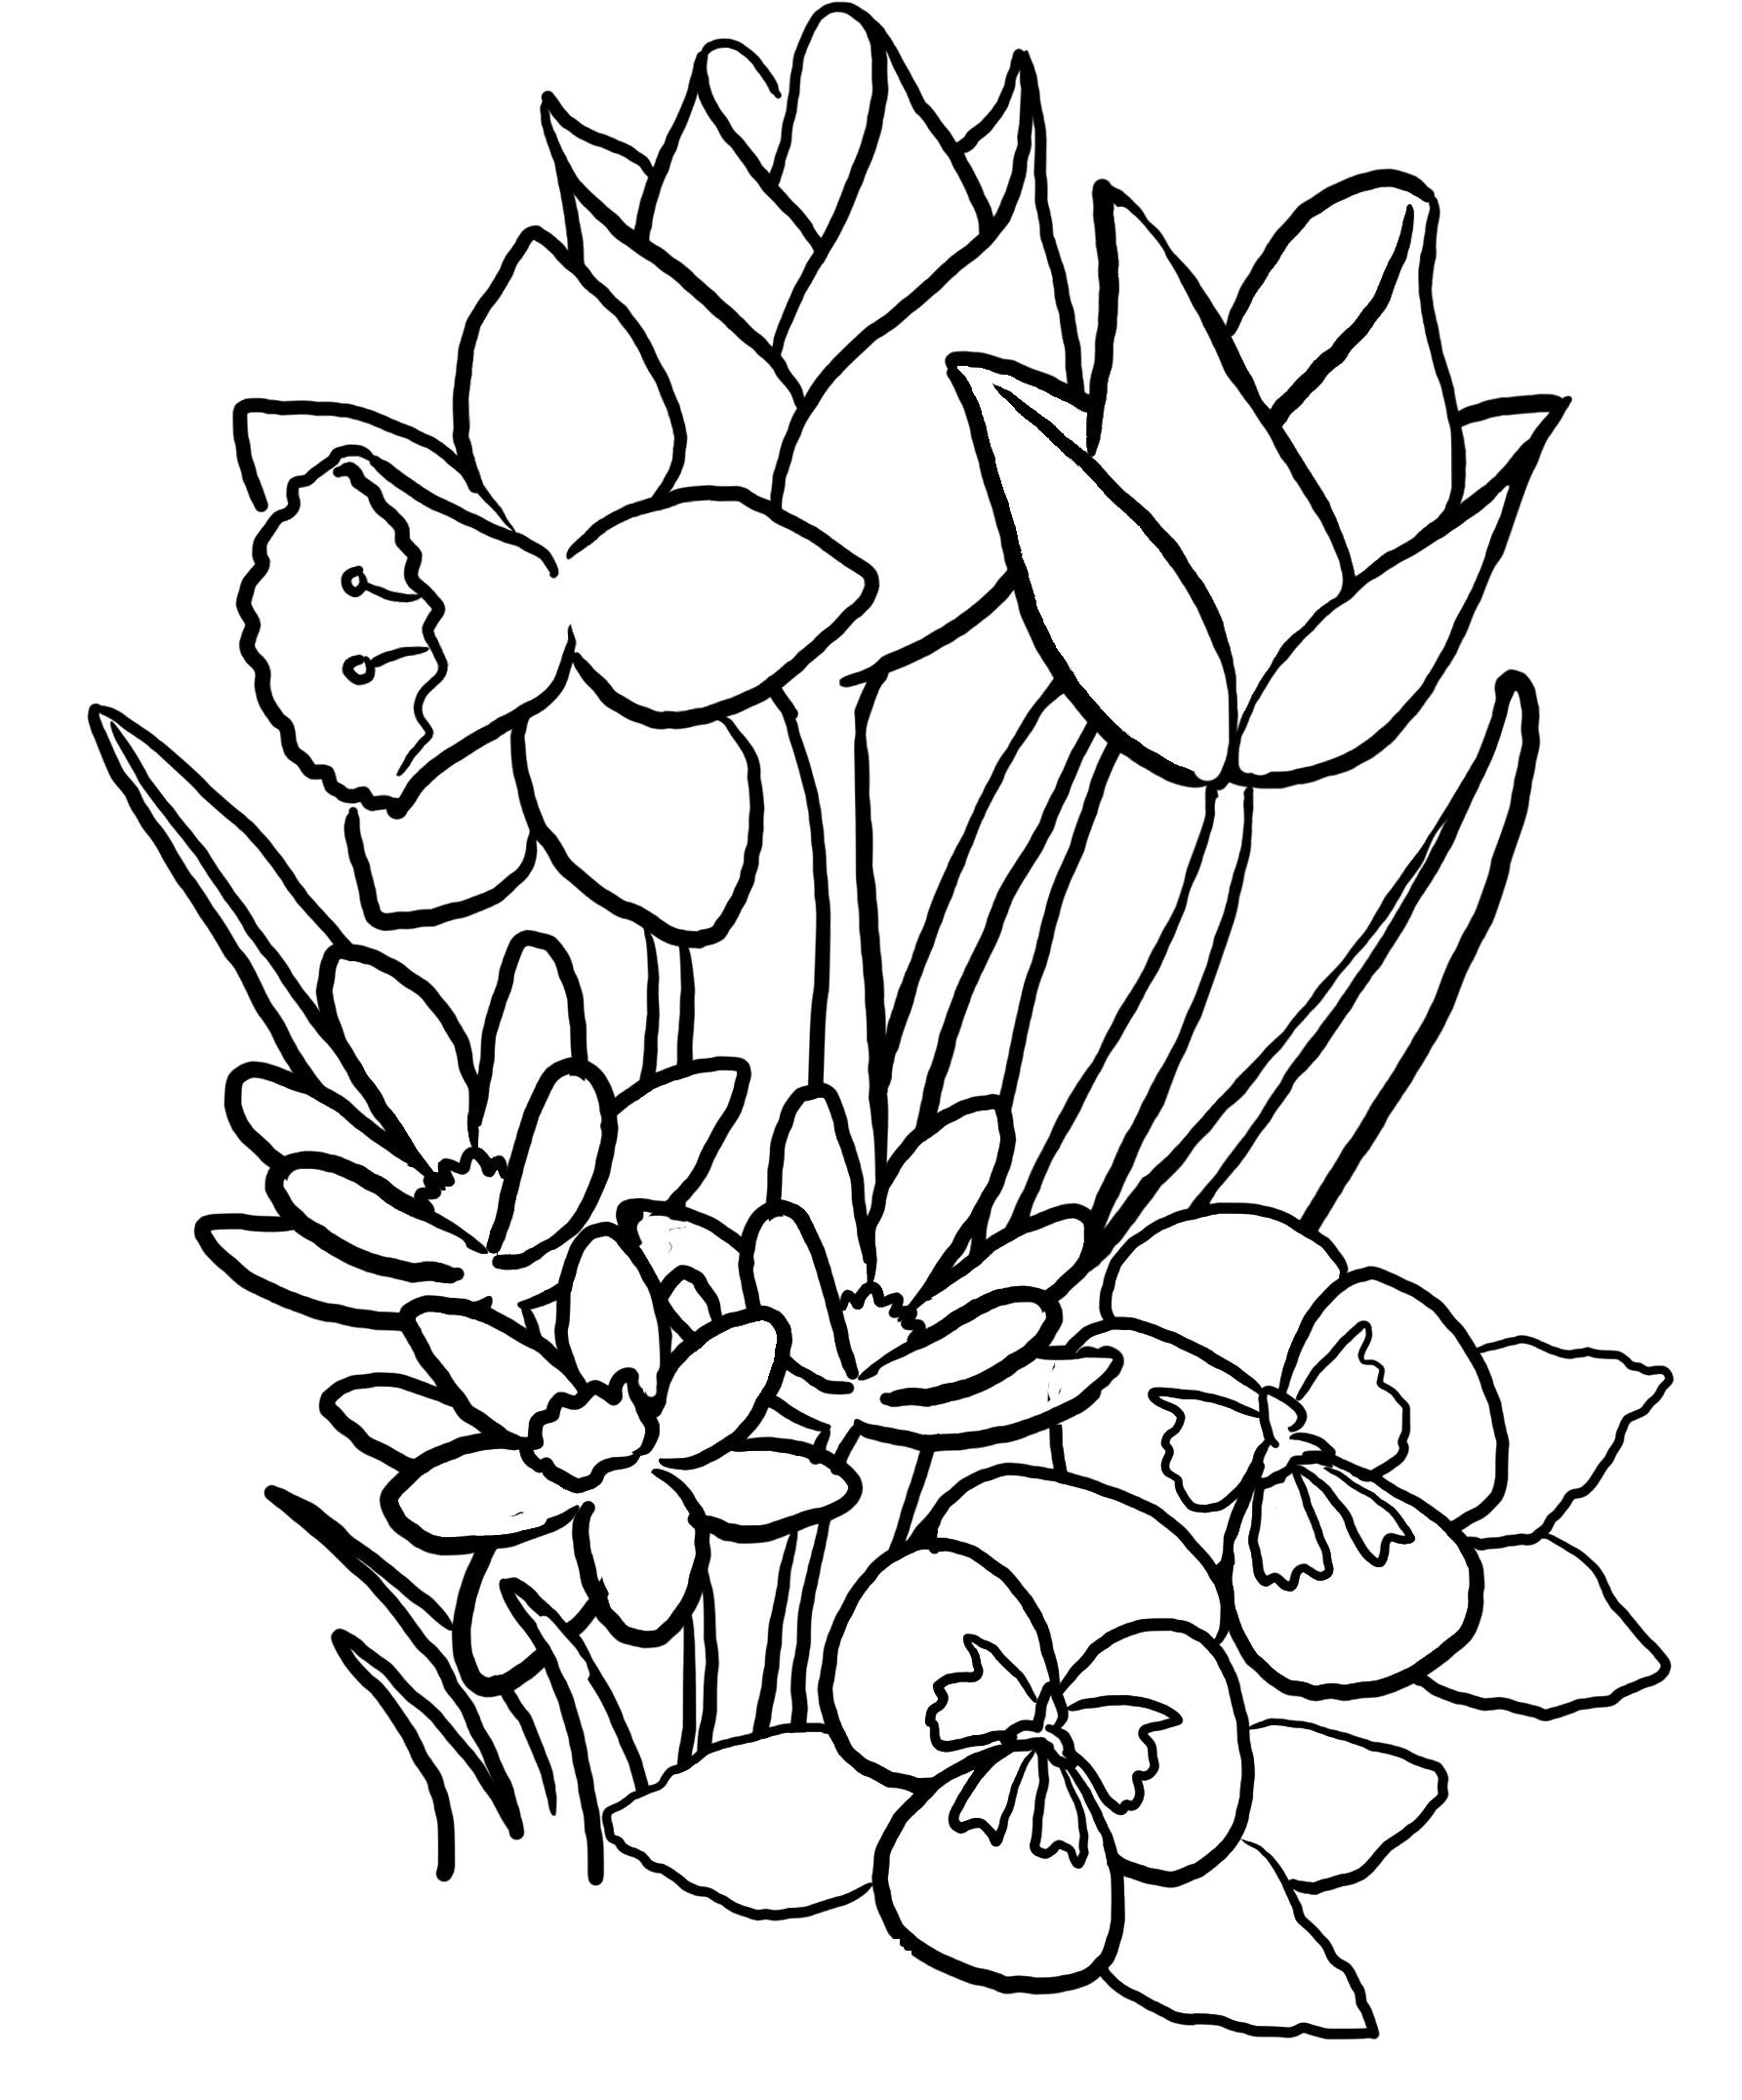 Spring Flowers Coloring Pages Free Printable Jpg 1785 2152 Spring Coloring Sheets Flower Coloring Sheets Printable Flower Coloring Pages